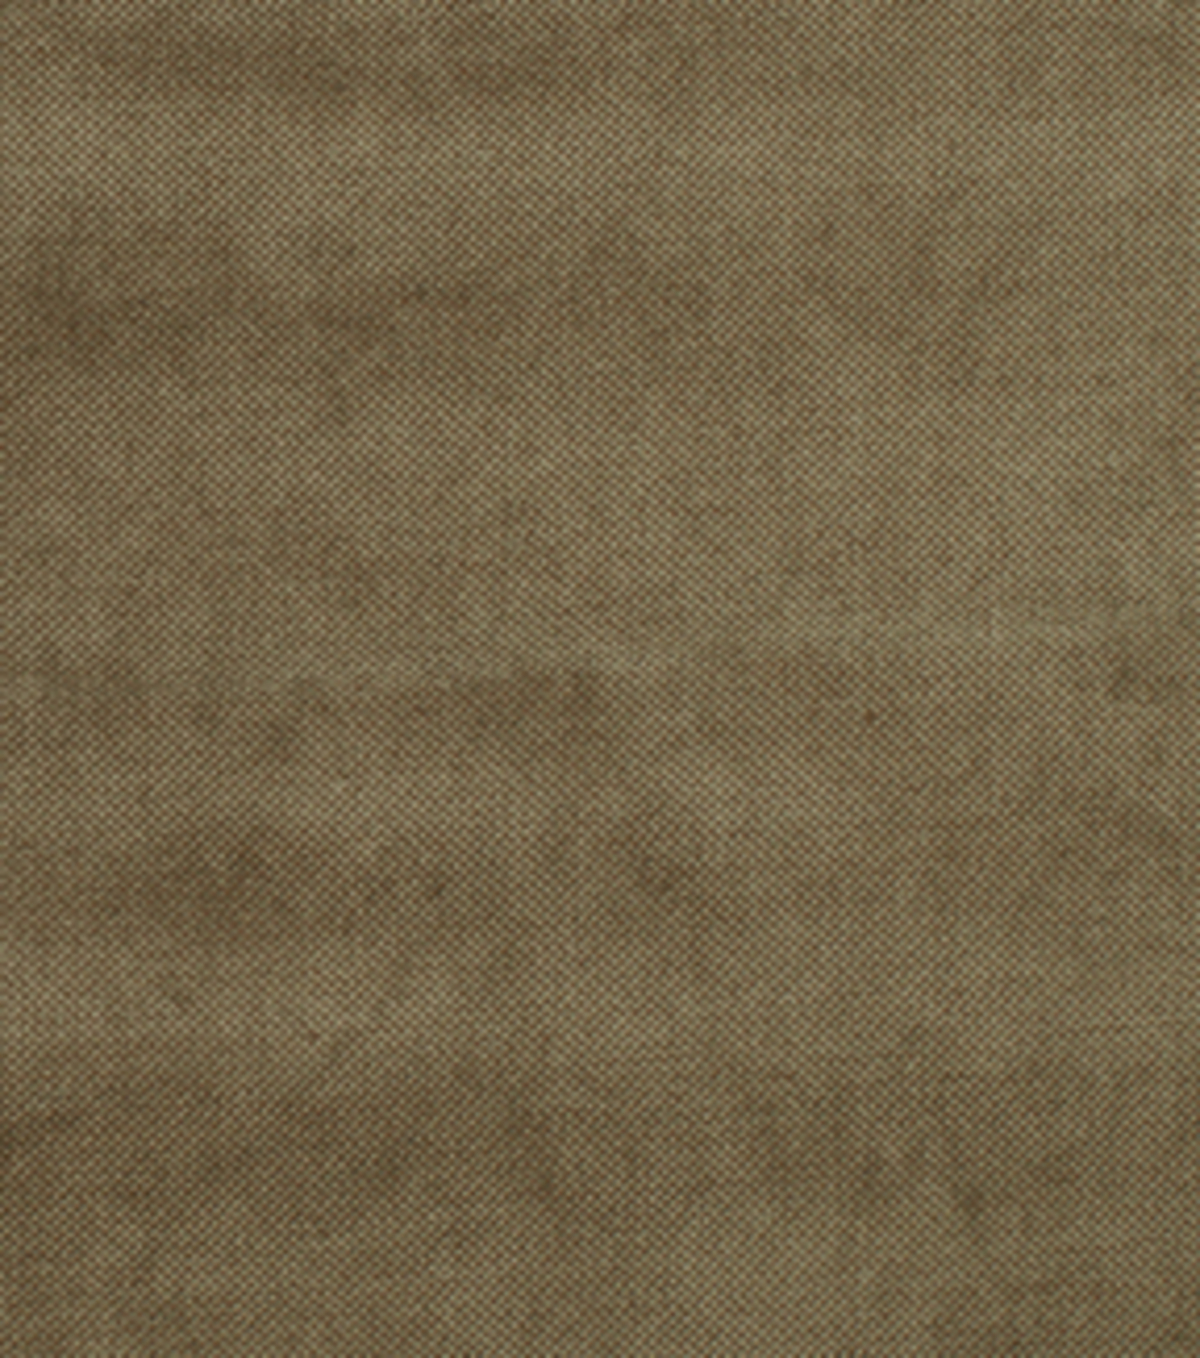 Home Decor 8\u0022x8\u0022 Fabric Swatch-Signature Series Claudel Truffle